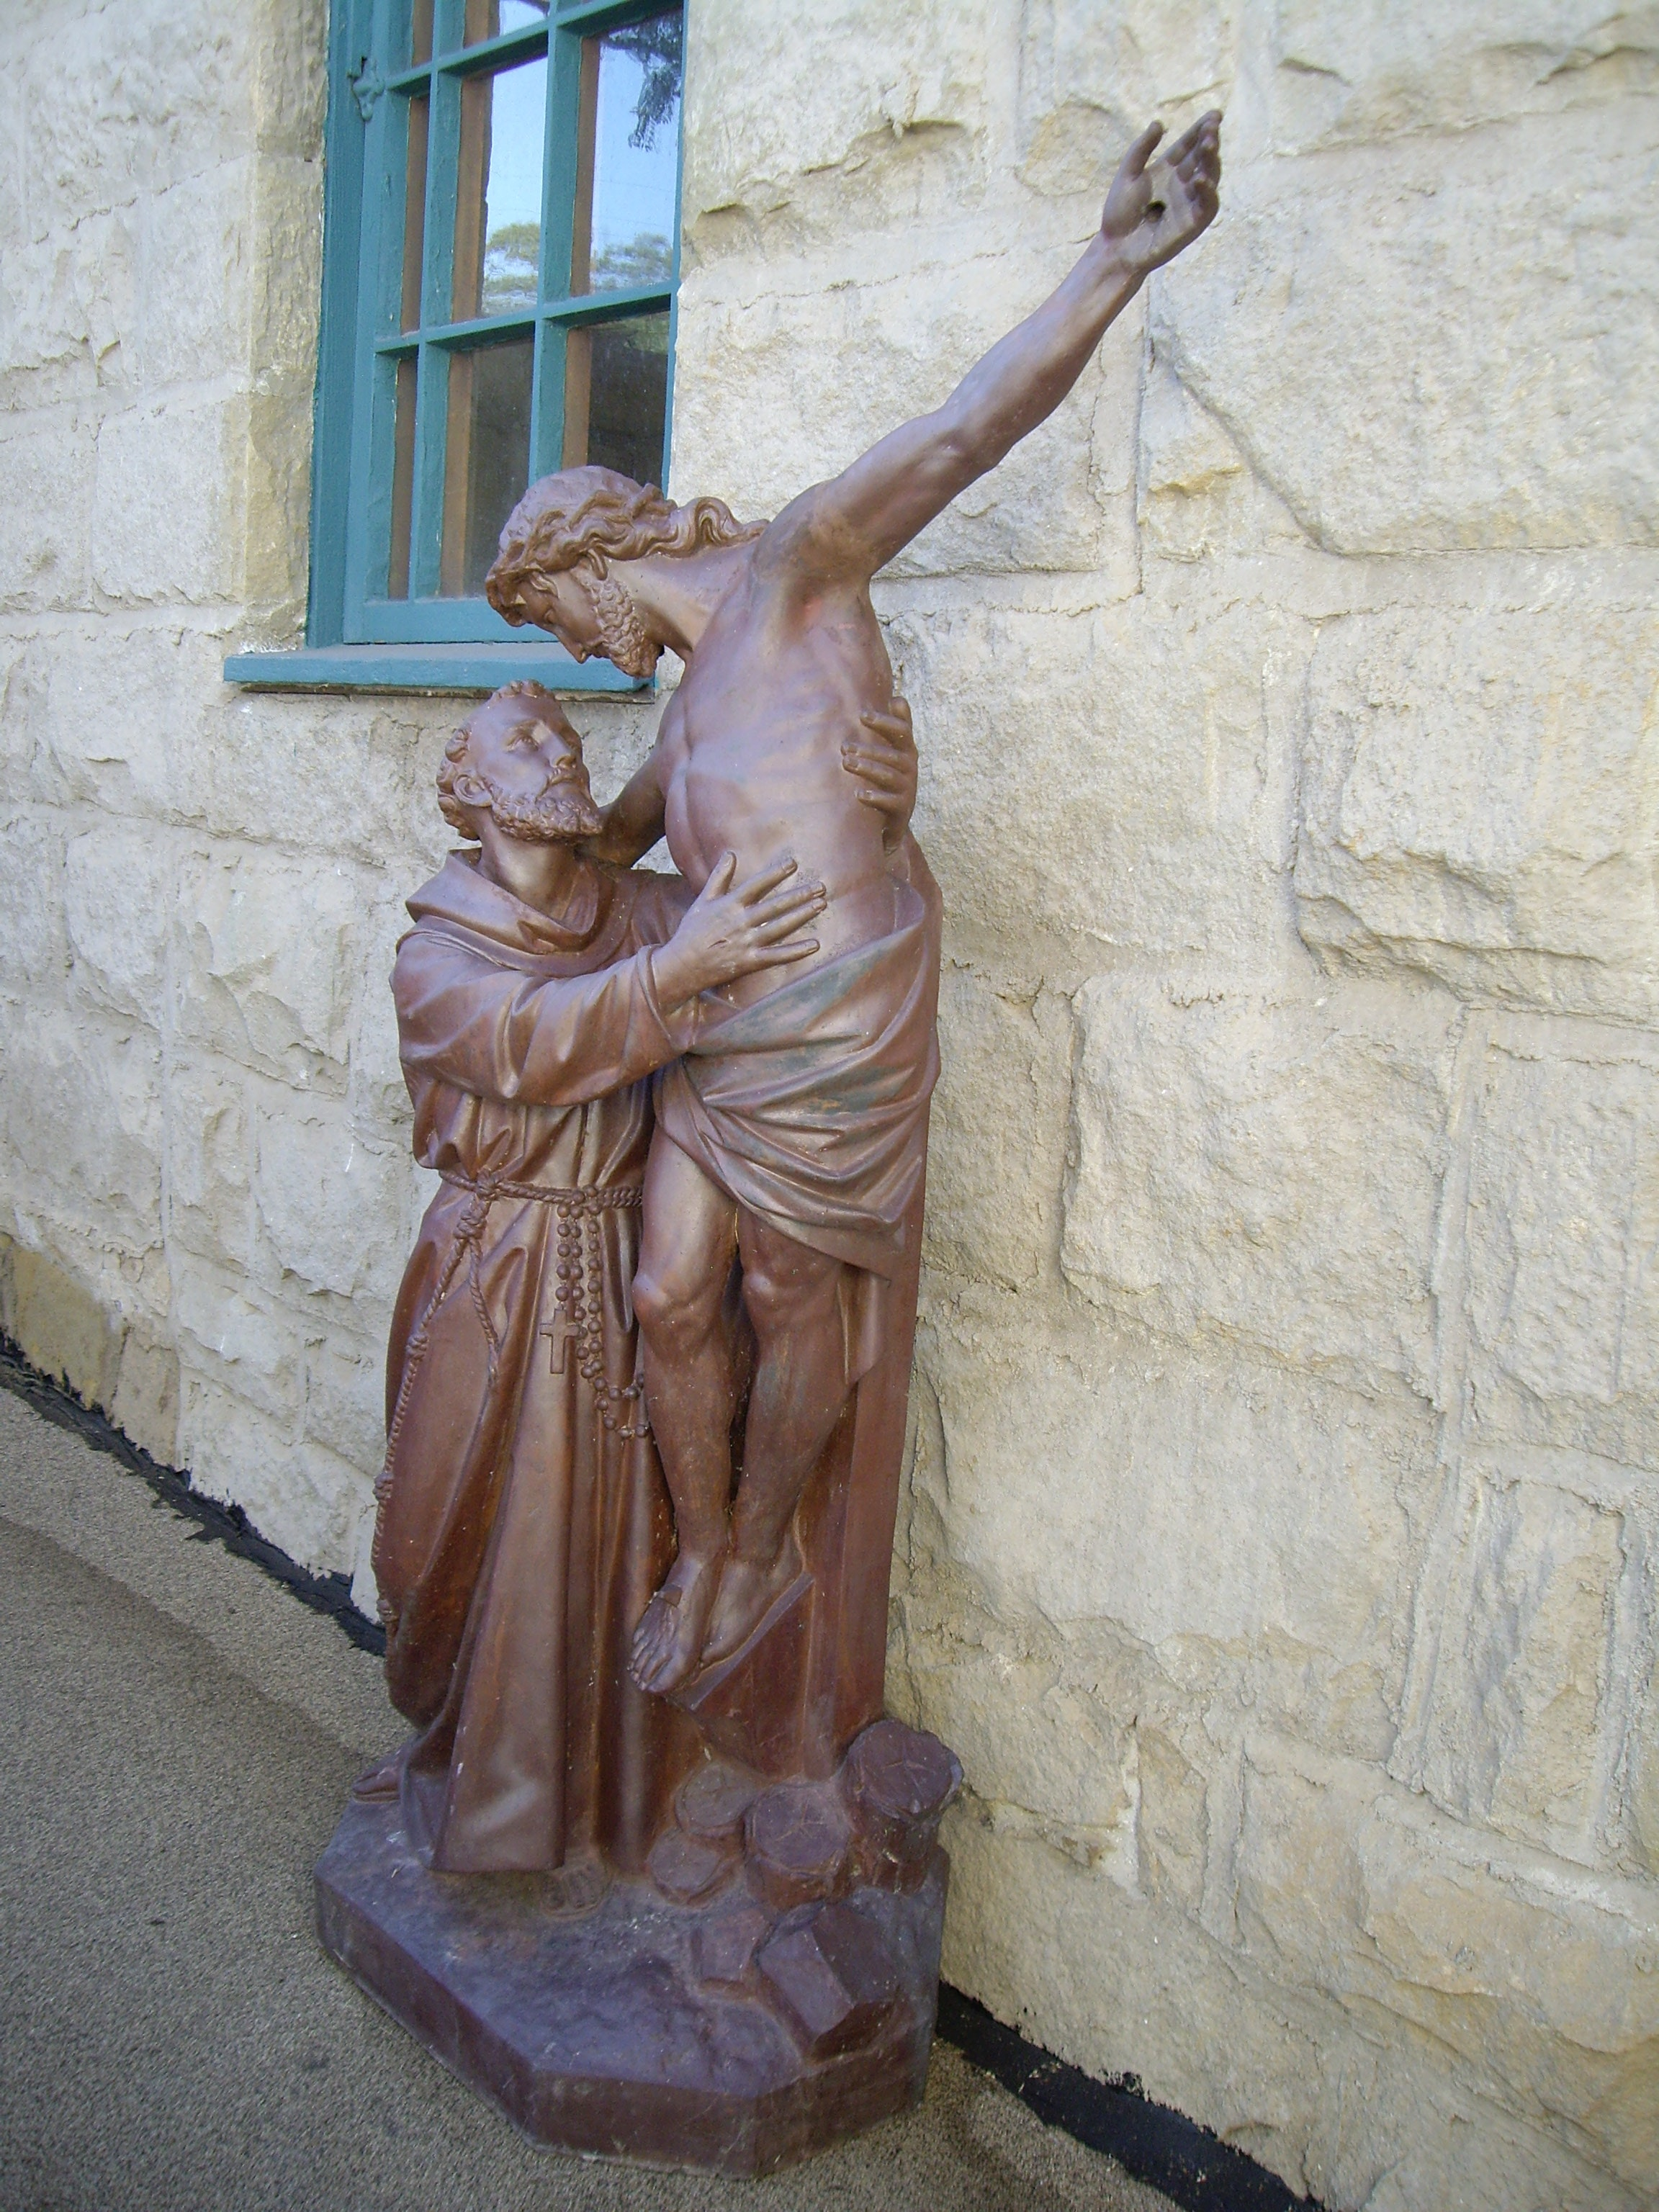 A statue outside of a church.